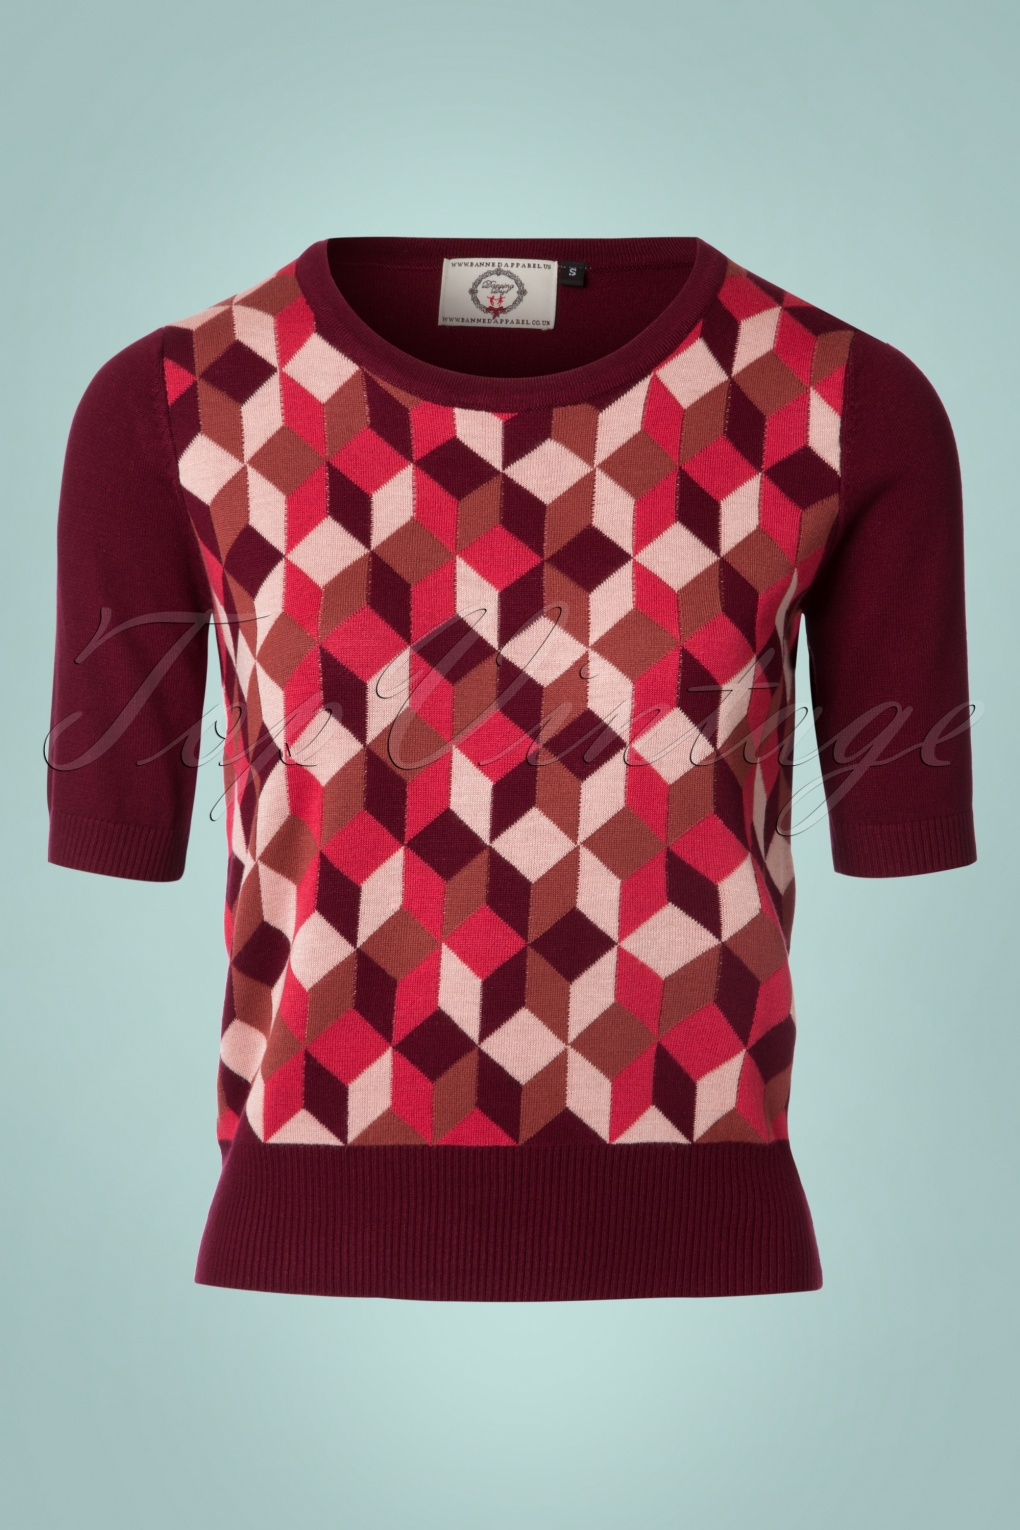 Vintage Sweaters: 1940s, 1950s, 1960s Pictures 60s Retro Cube Jumper in Burgundy £34.53 AT vintagedancer.com